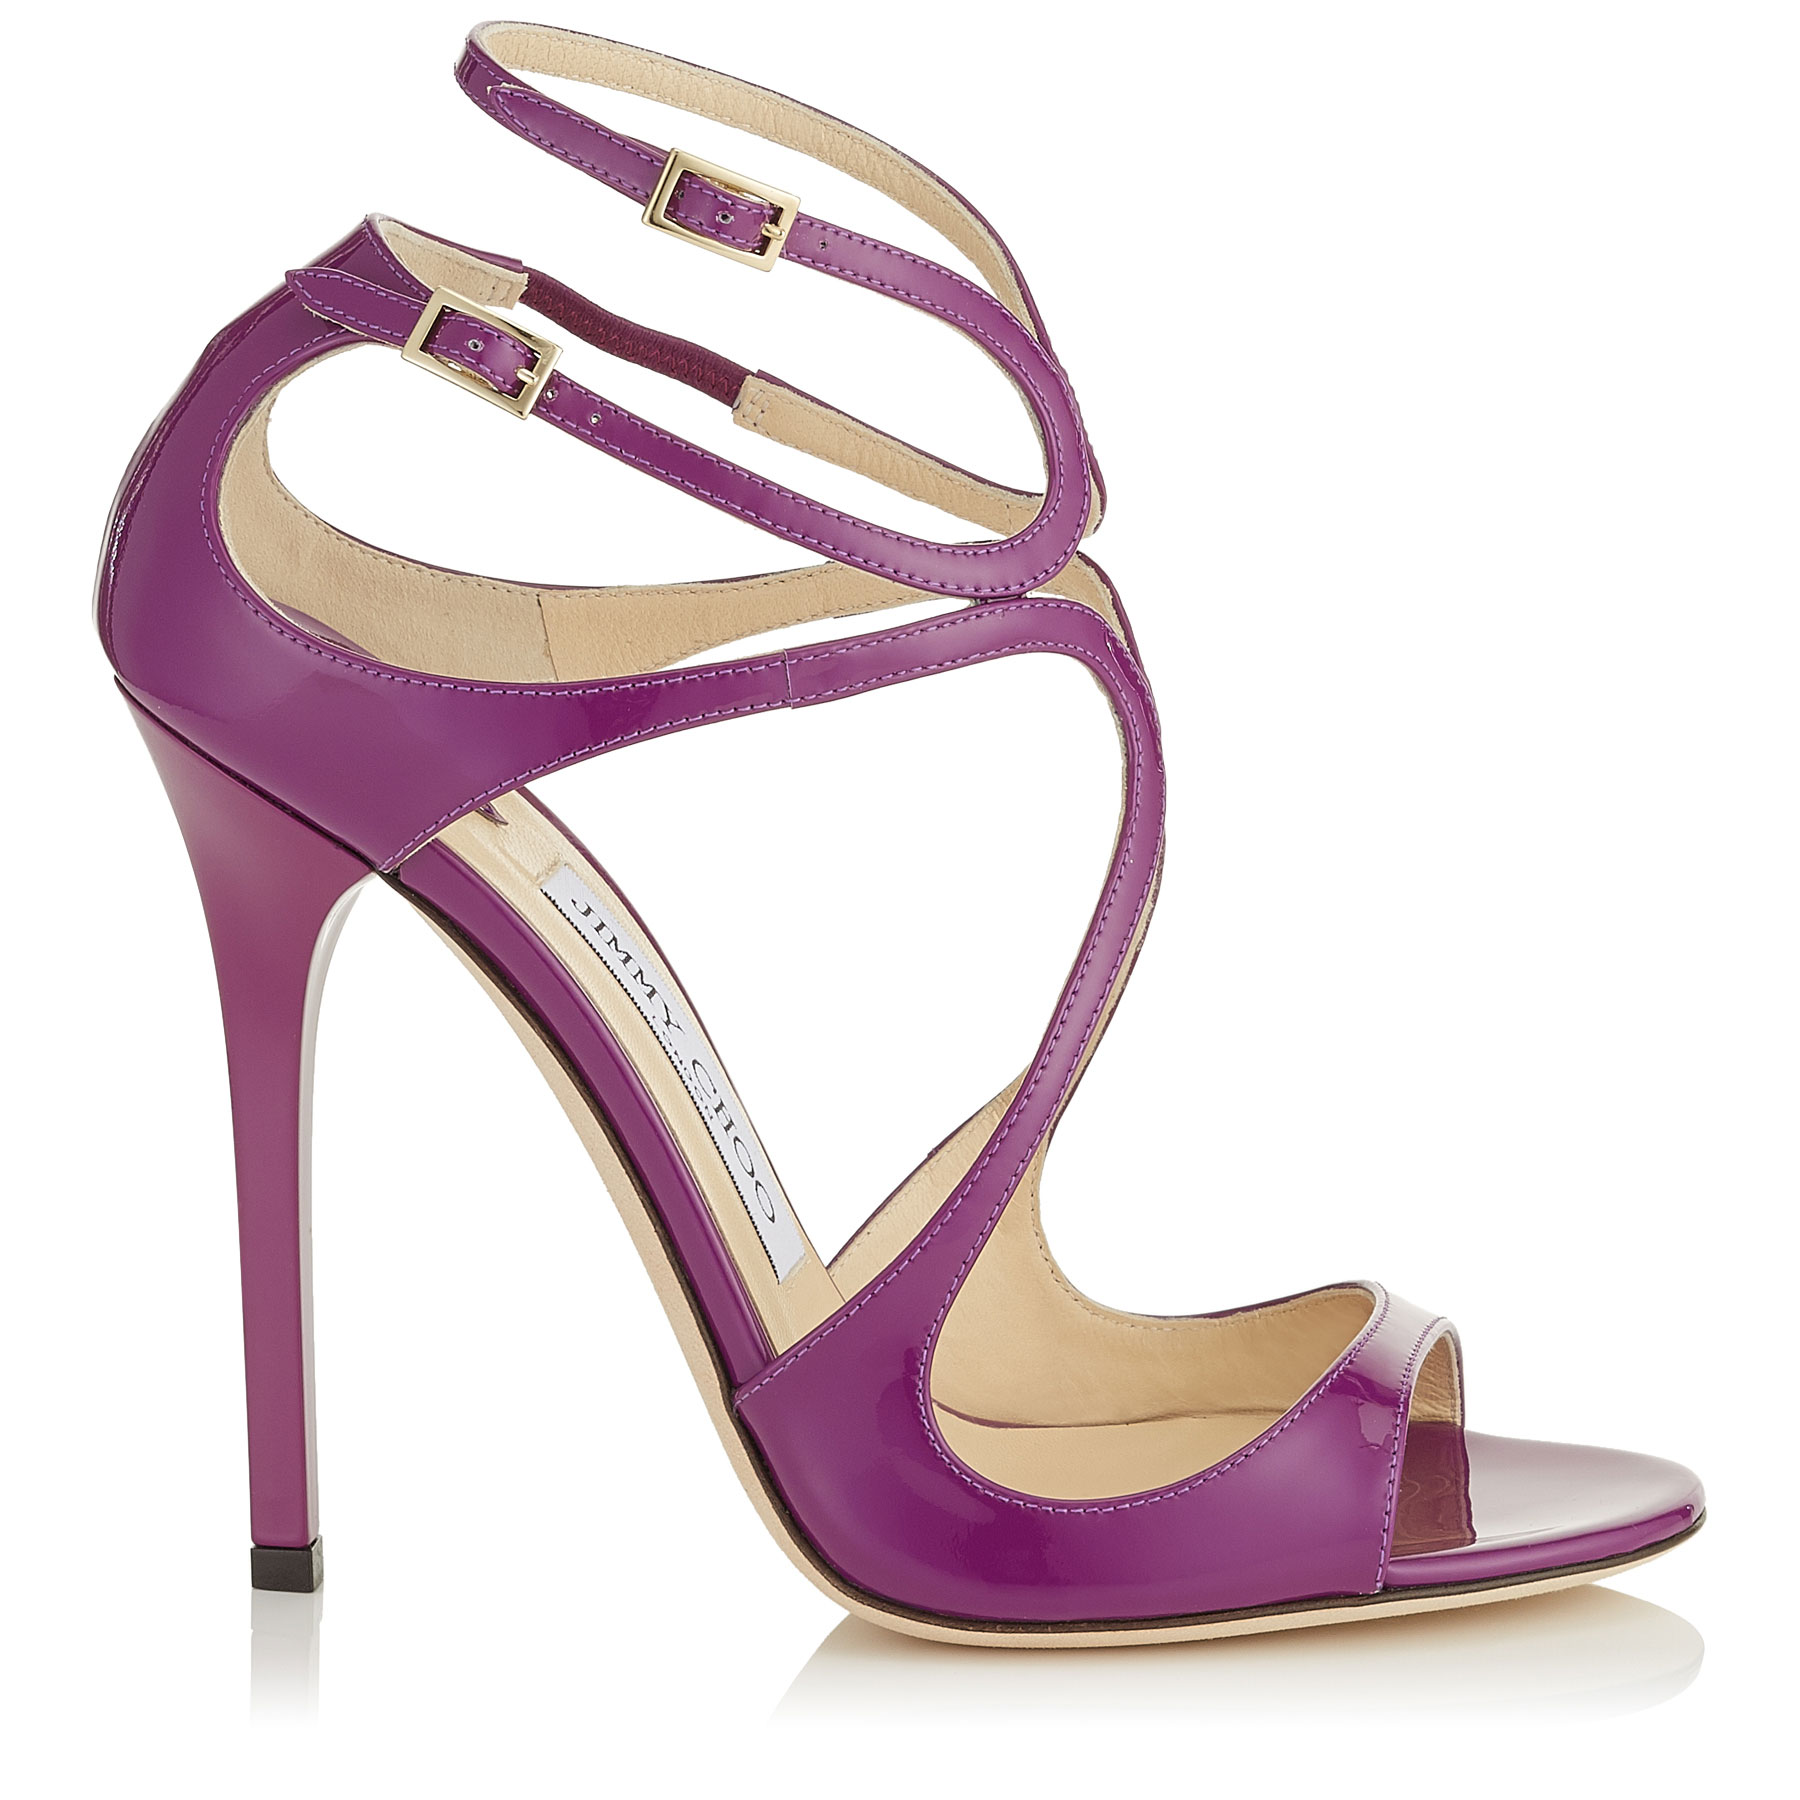 LANCE Madeline Patent Leather Sandals